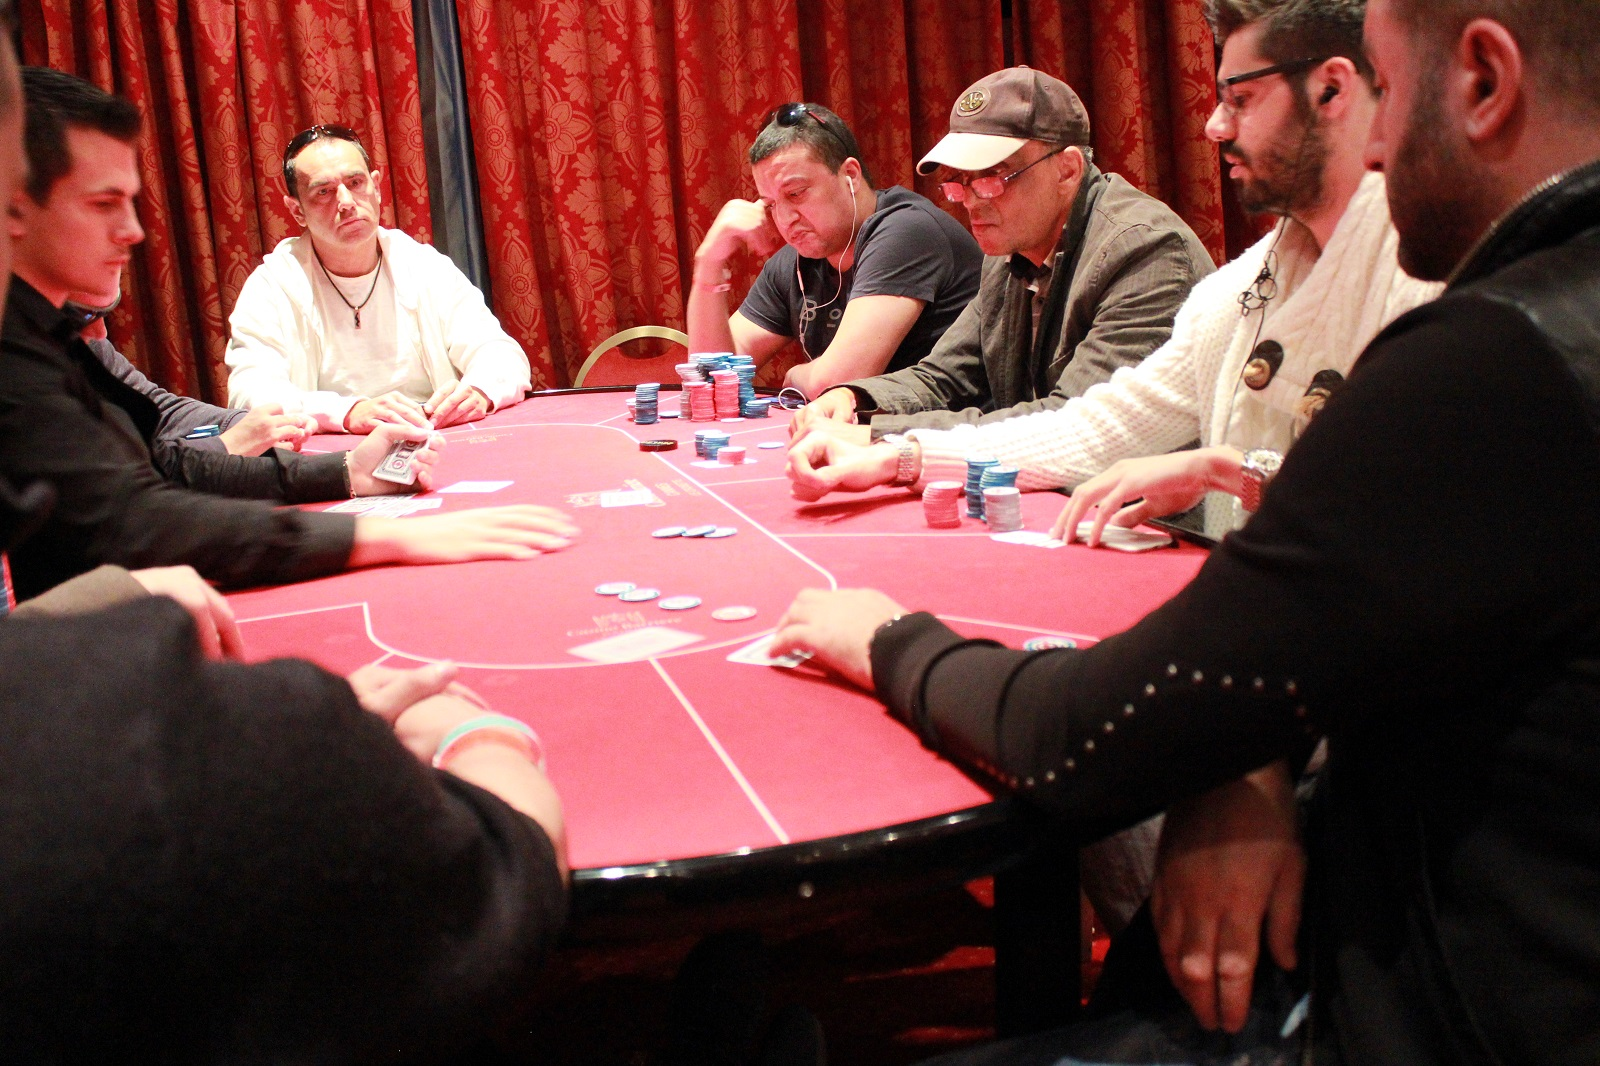 WSOP-C Cannes: bon timing pour un Double Up !